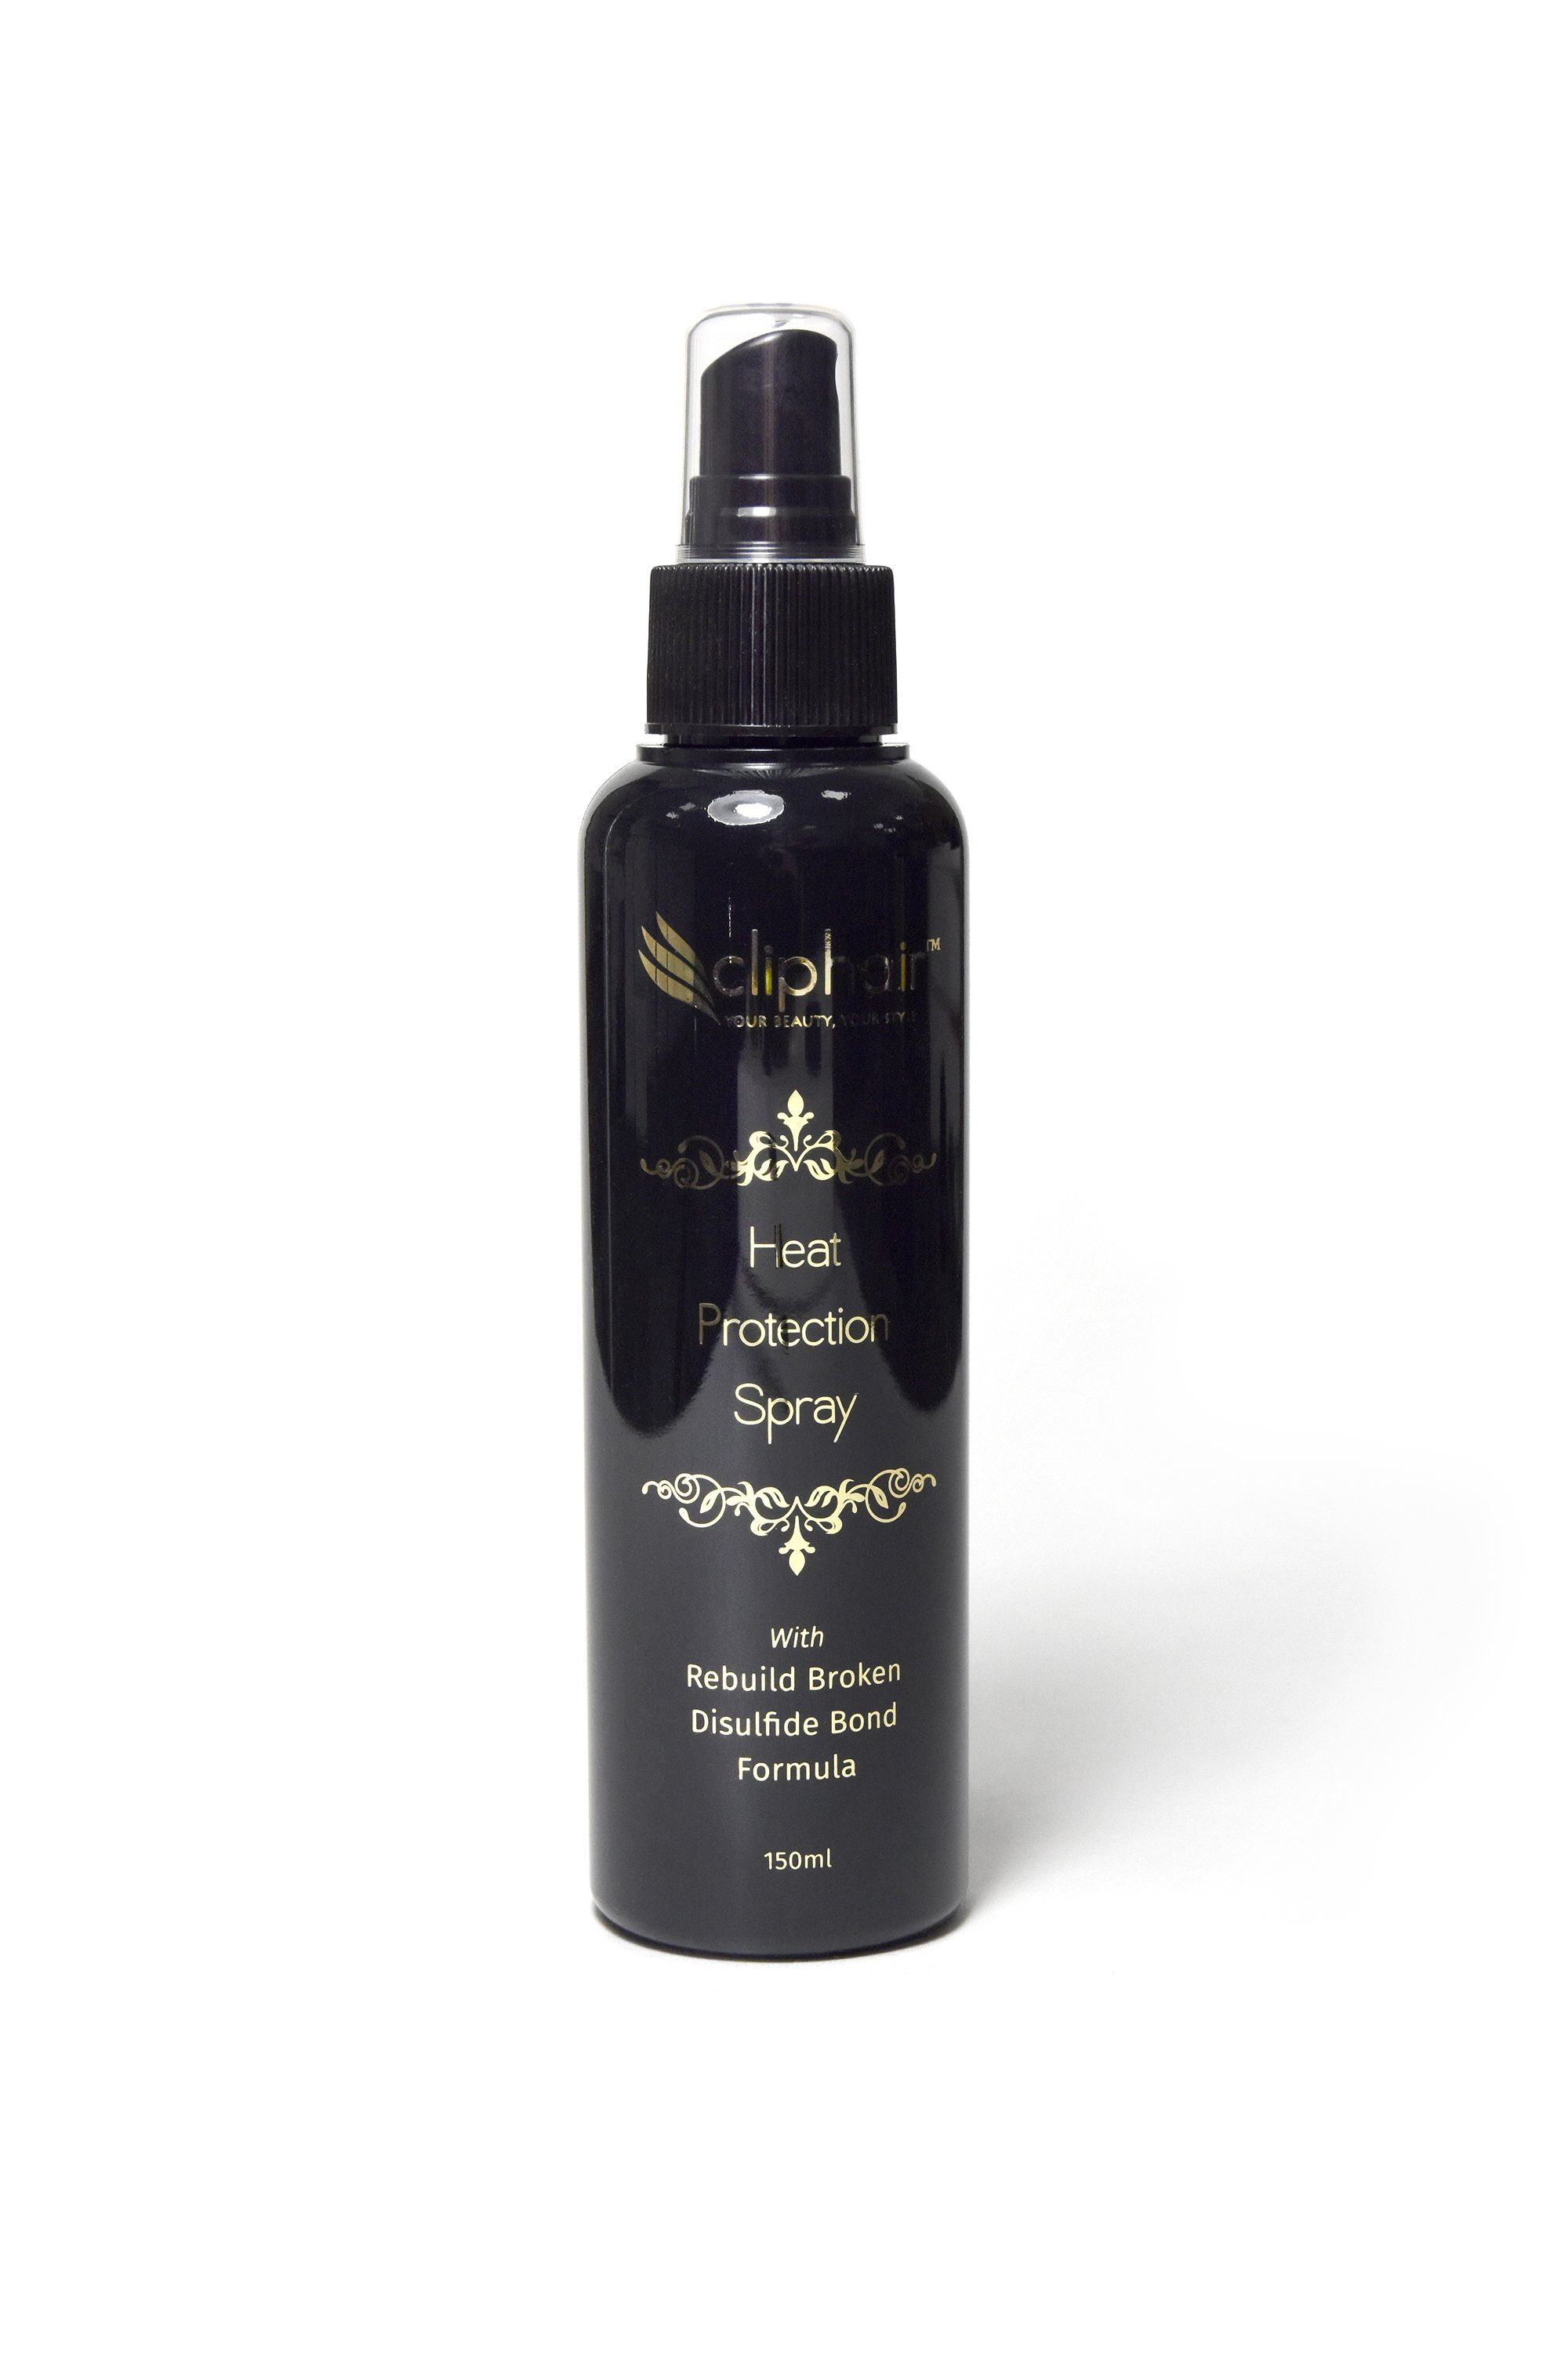 cliphair heat protection hairspray for hair extensions